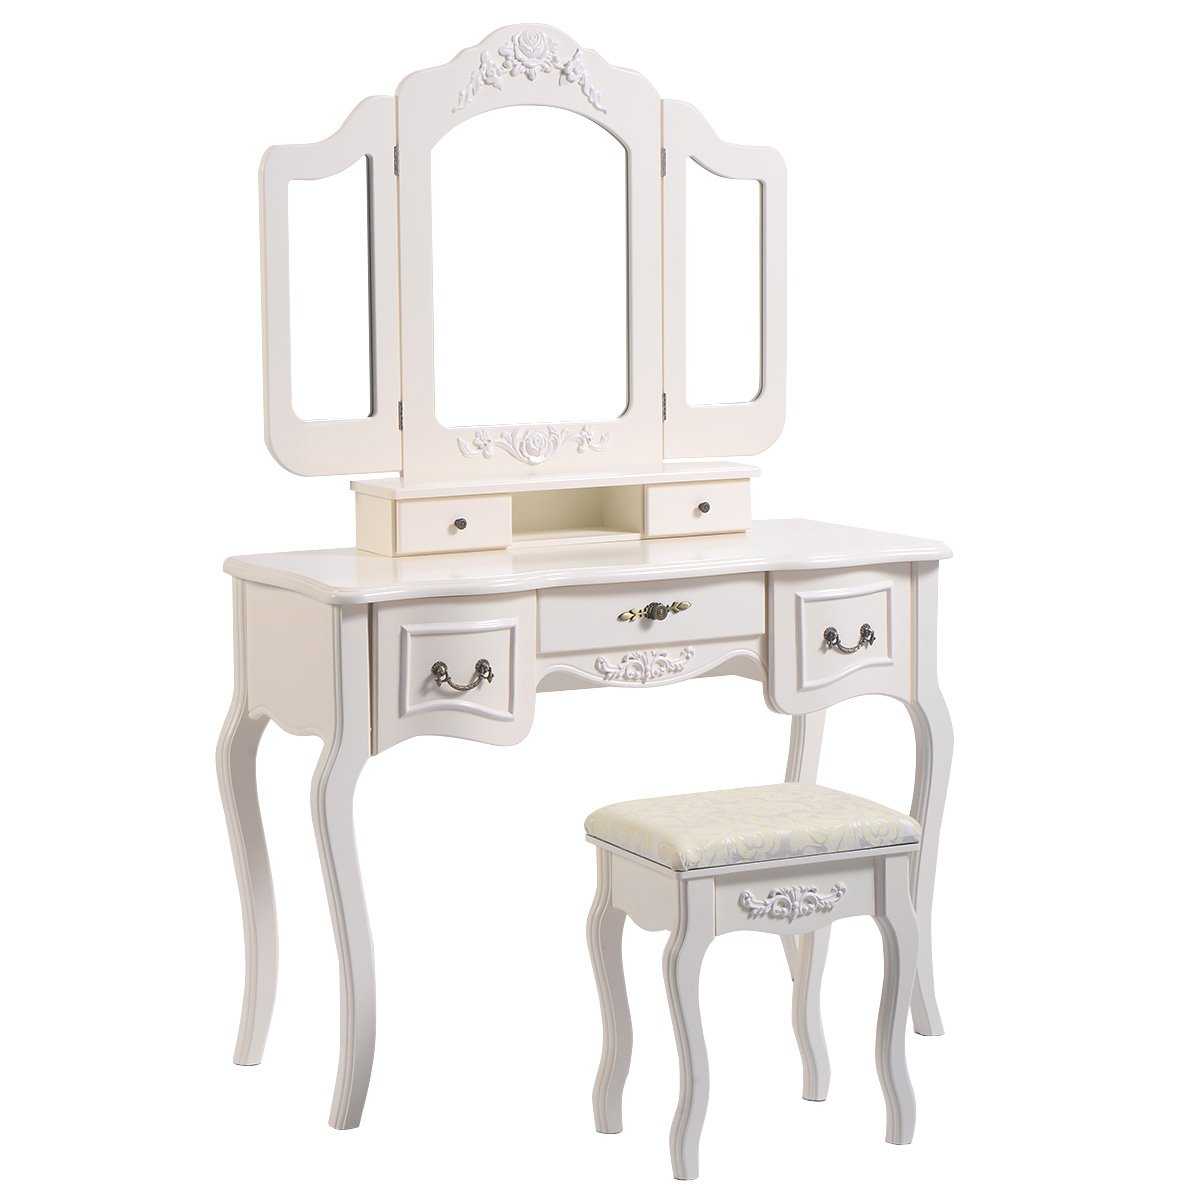 Giantex Tri Folding Vintage White Vanity Makeup Dressing Table Set 5 Drawers &stool 0